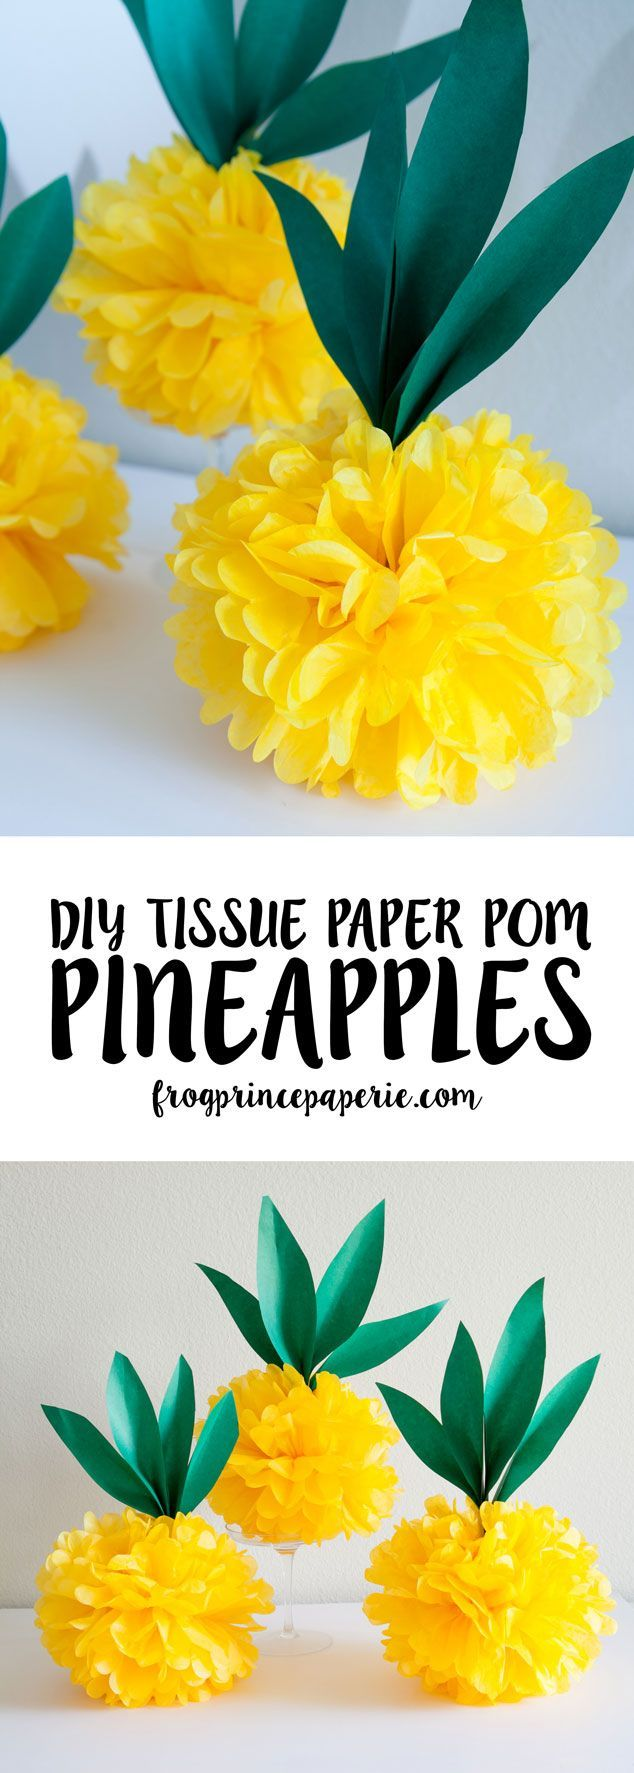 Make your own Tissue Pouf Pineapple for fabulous luau or beach party decor! Click through for the easy